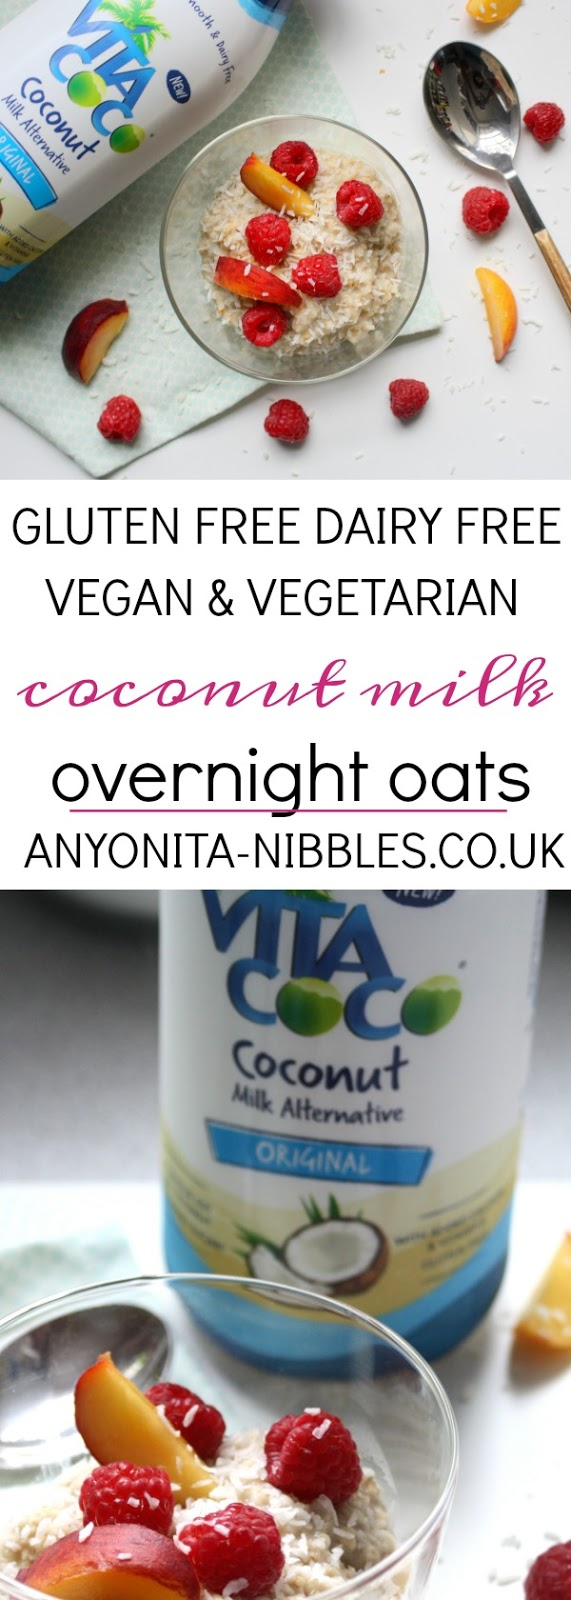 This creamy oatmeal is made in the fridge overnight with coconut milk from Anyonita Nibbles